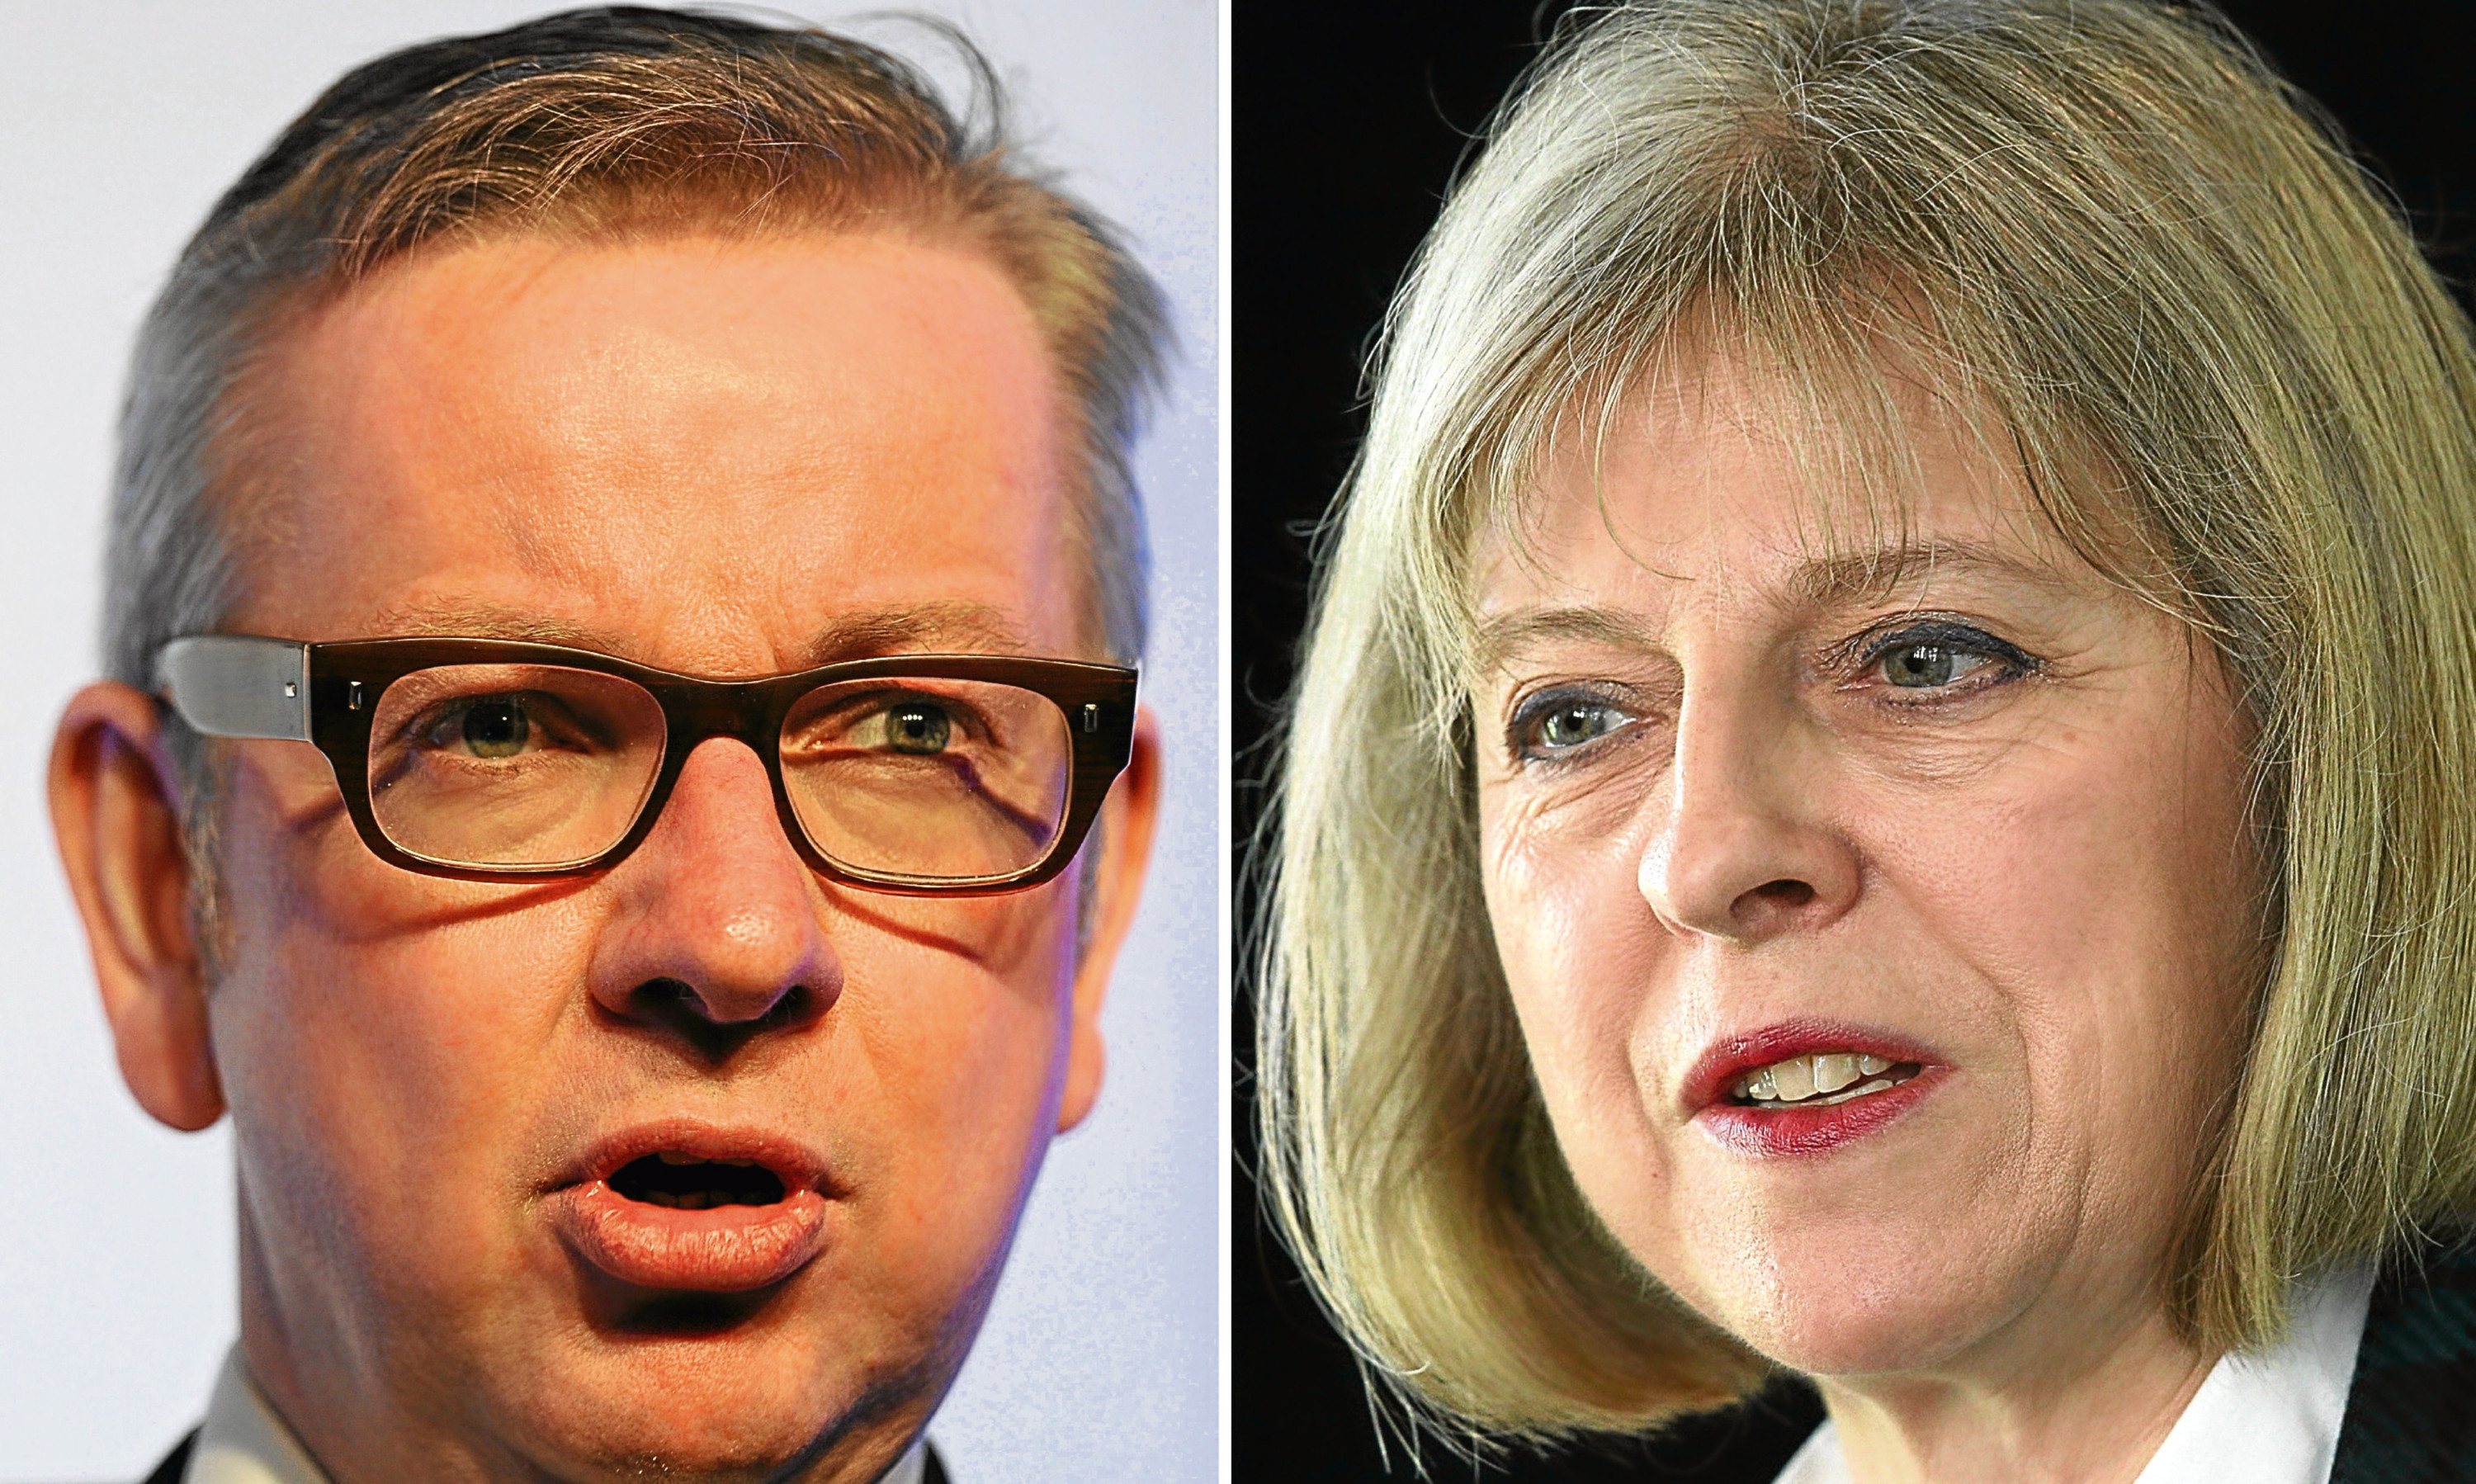 Prime Ministerial candidates Michael Gove and Theresa May